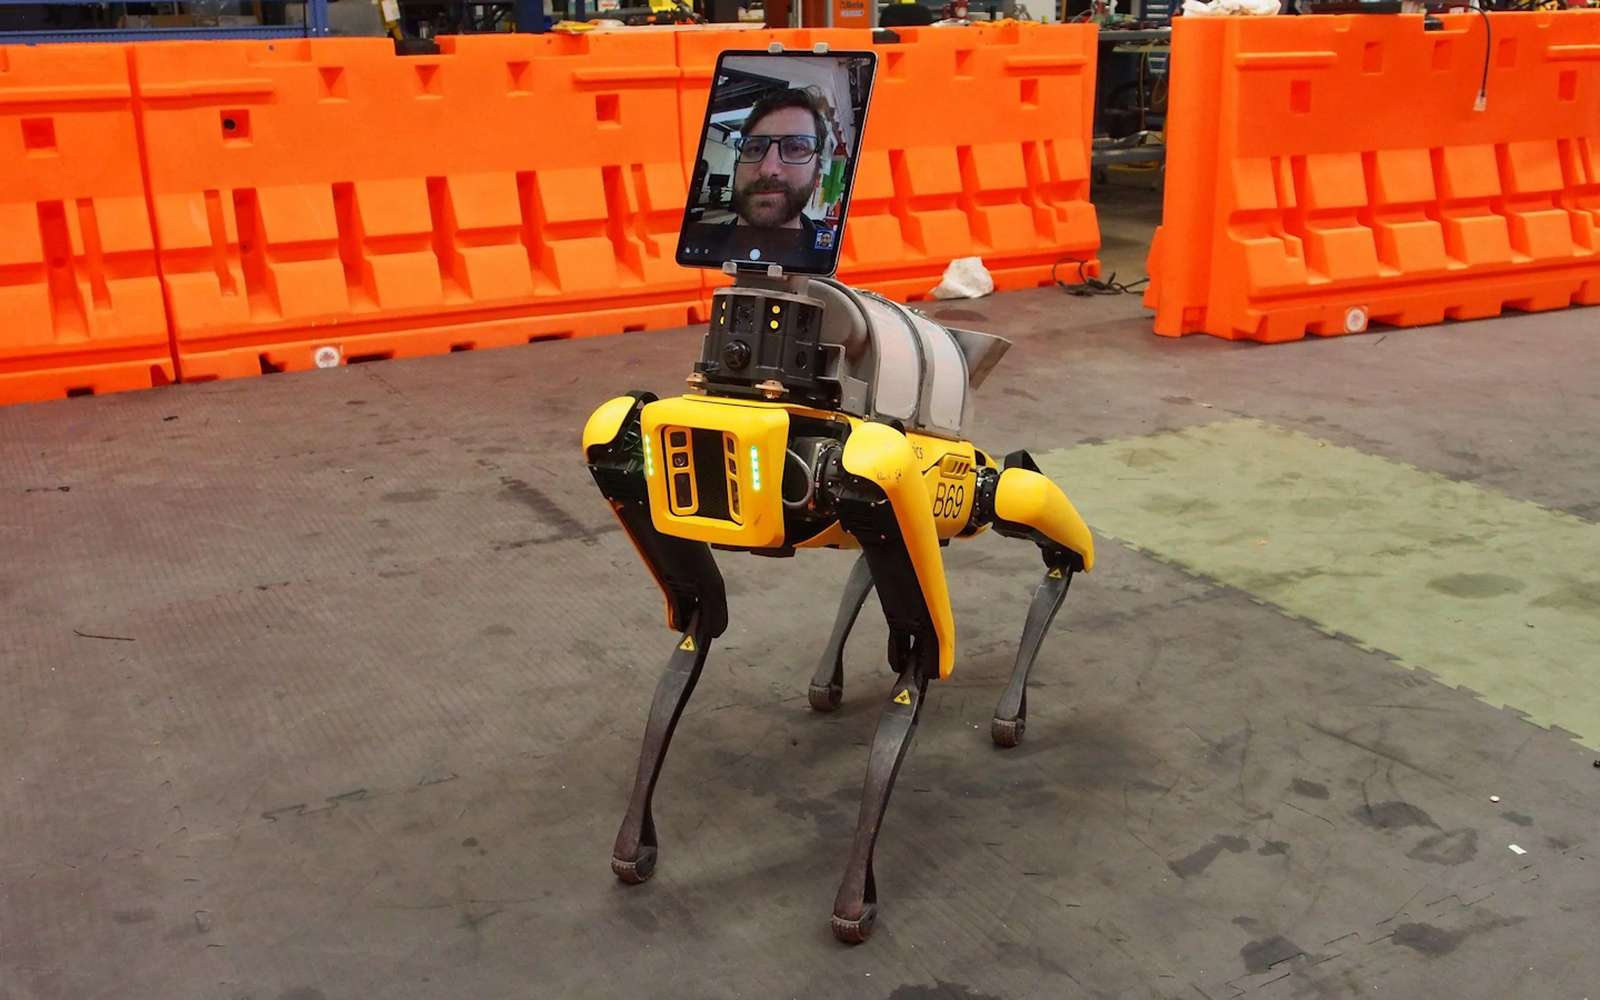 Le robot-chien Spot de Boston Dynamics est devenu docteur. © Boston Dynamics